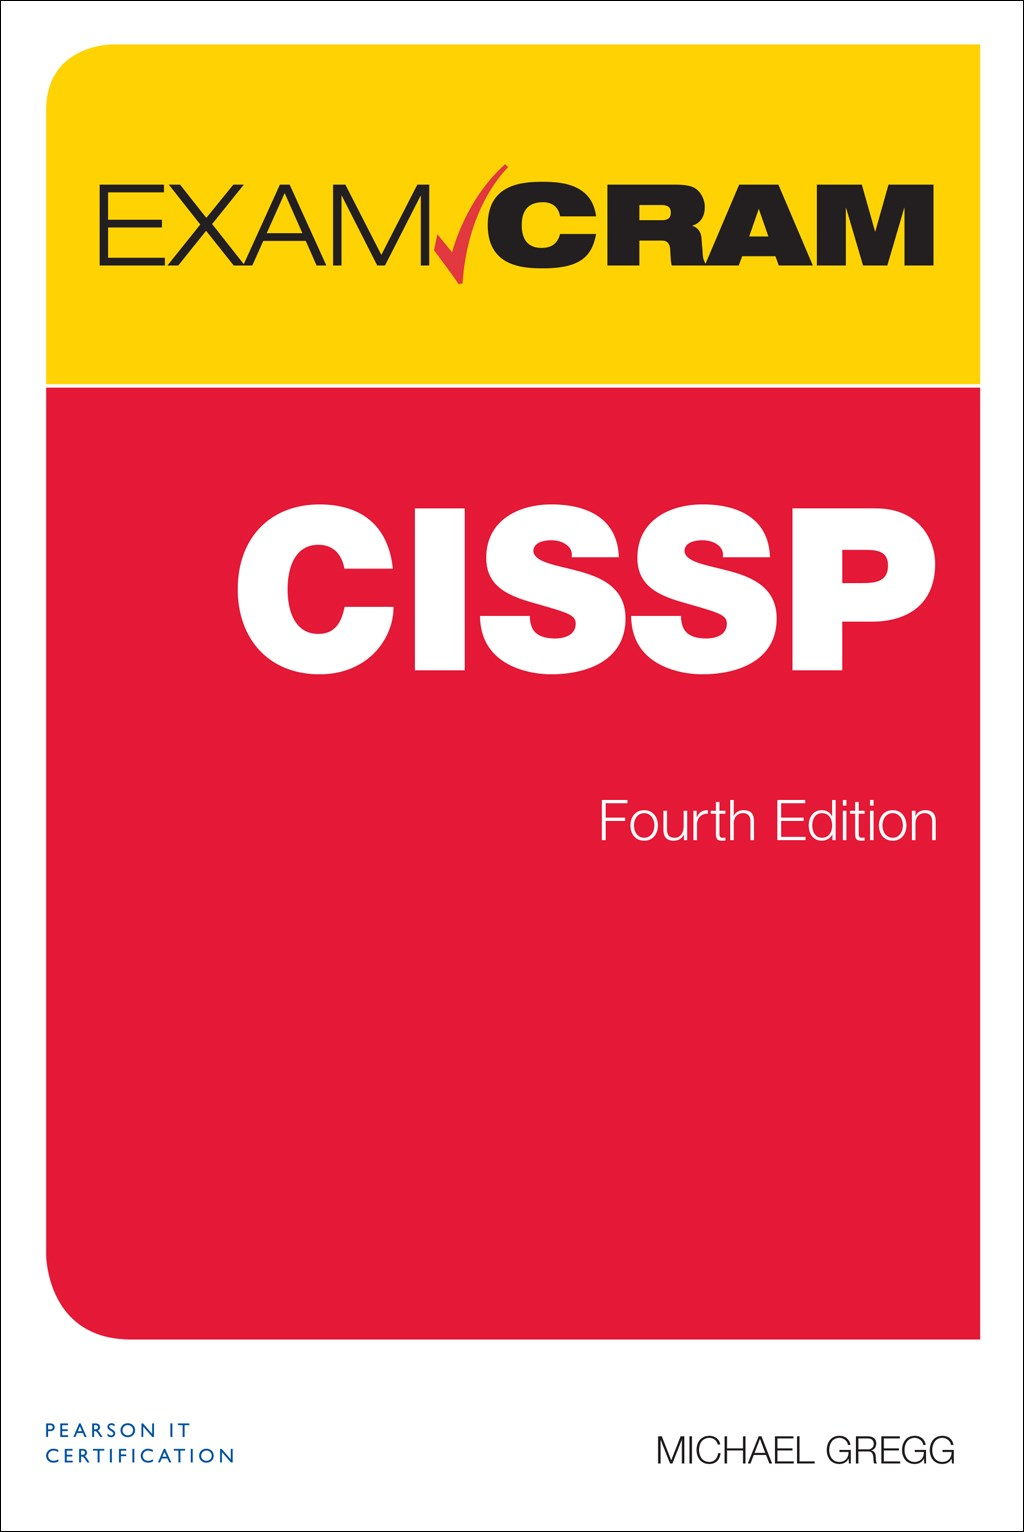 CISSP Exam Cram, 4th Edition